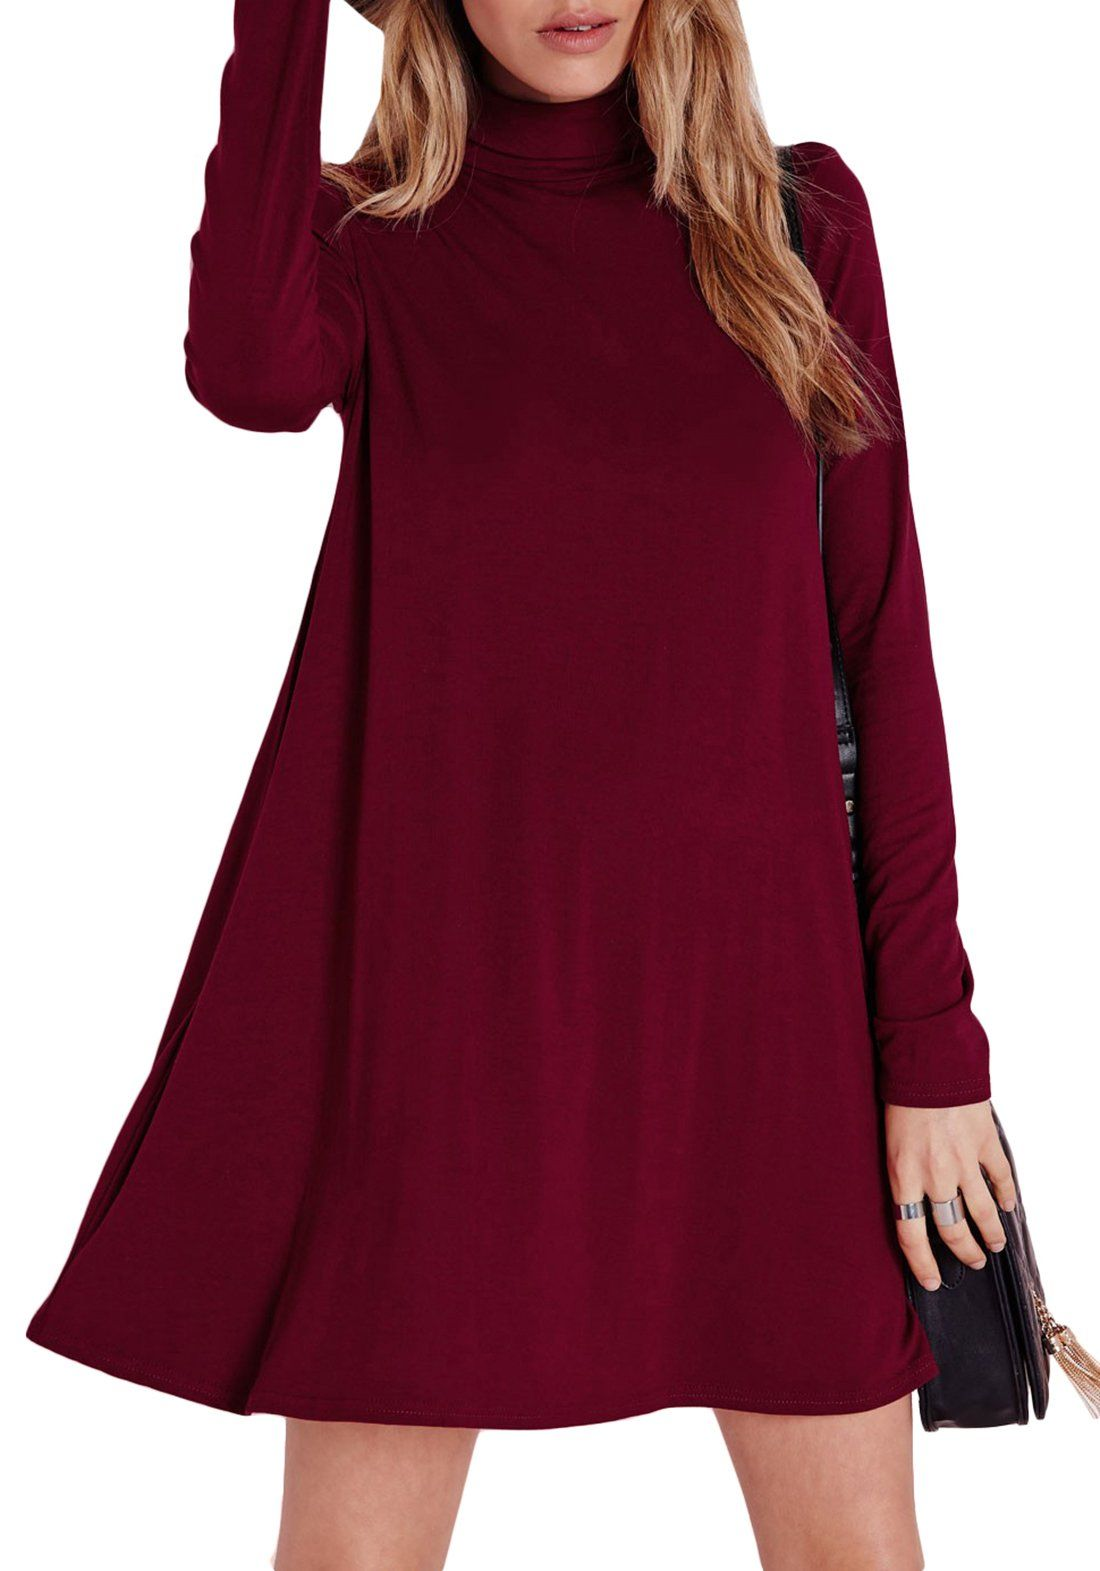 ecd26335faf7 SheIn Women s Wine Red Long Sleeve Casual Dress (Large